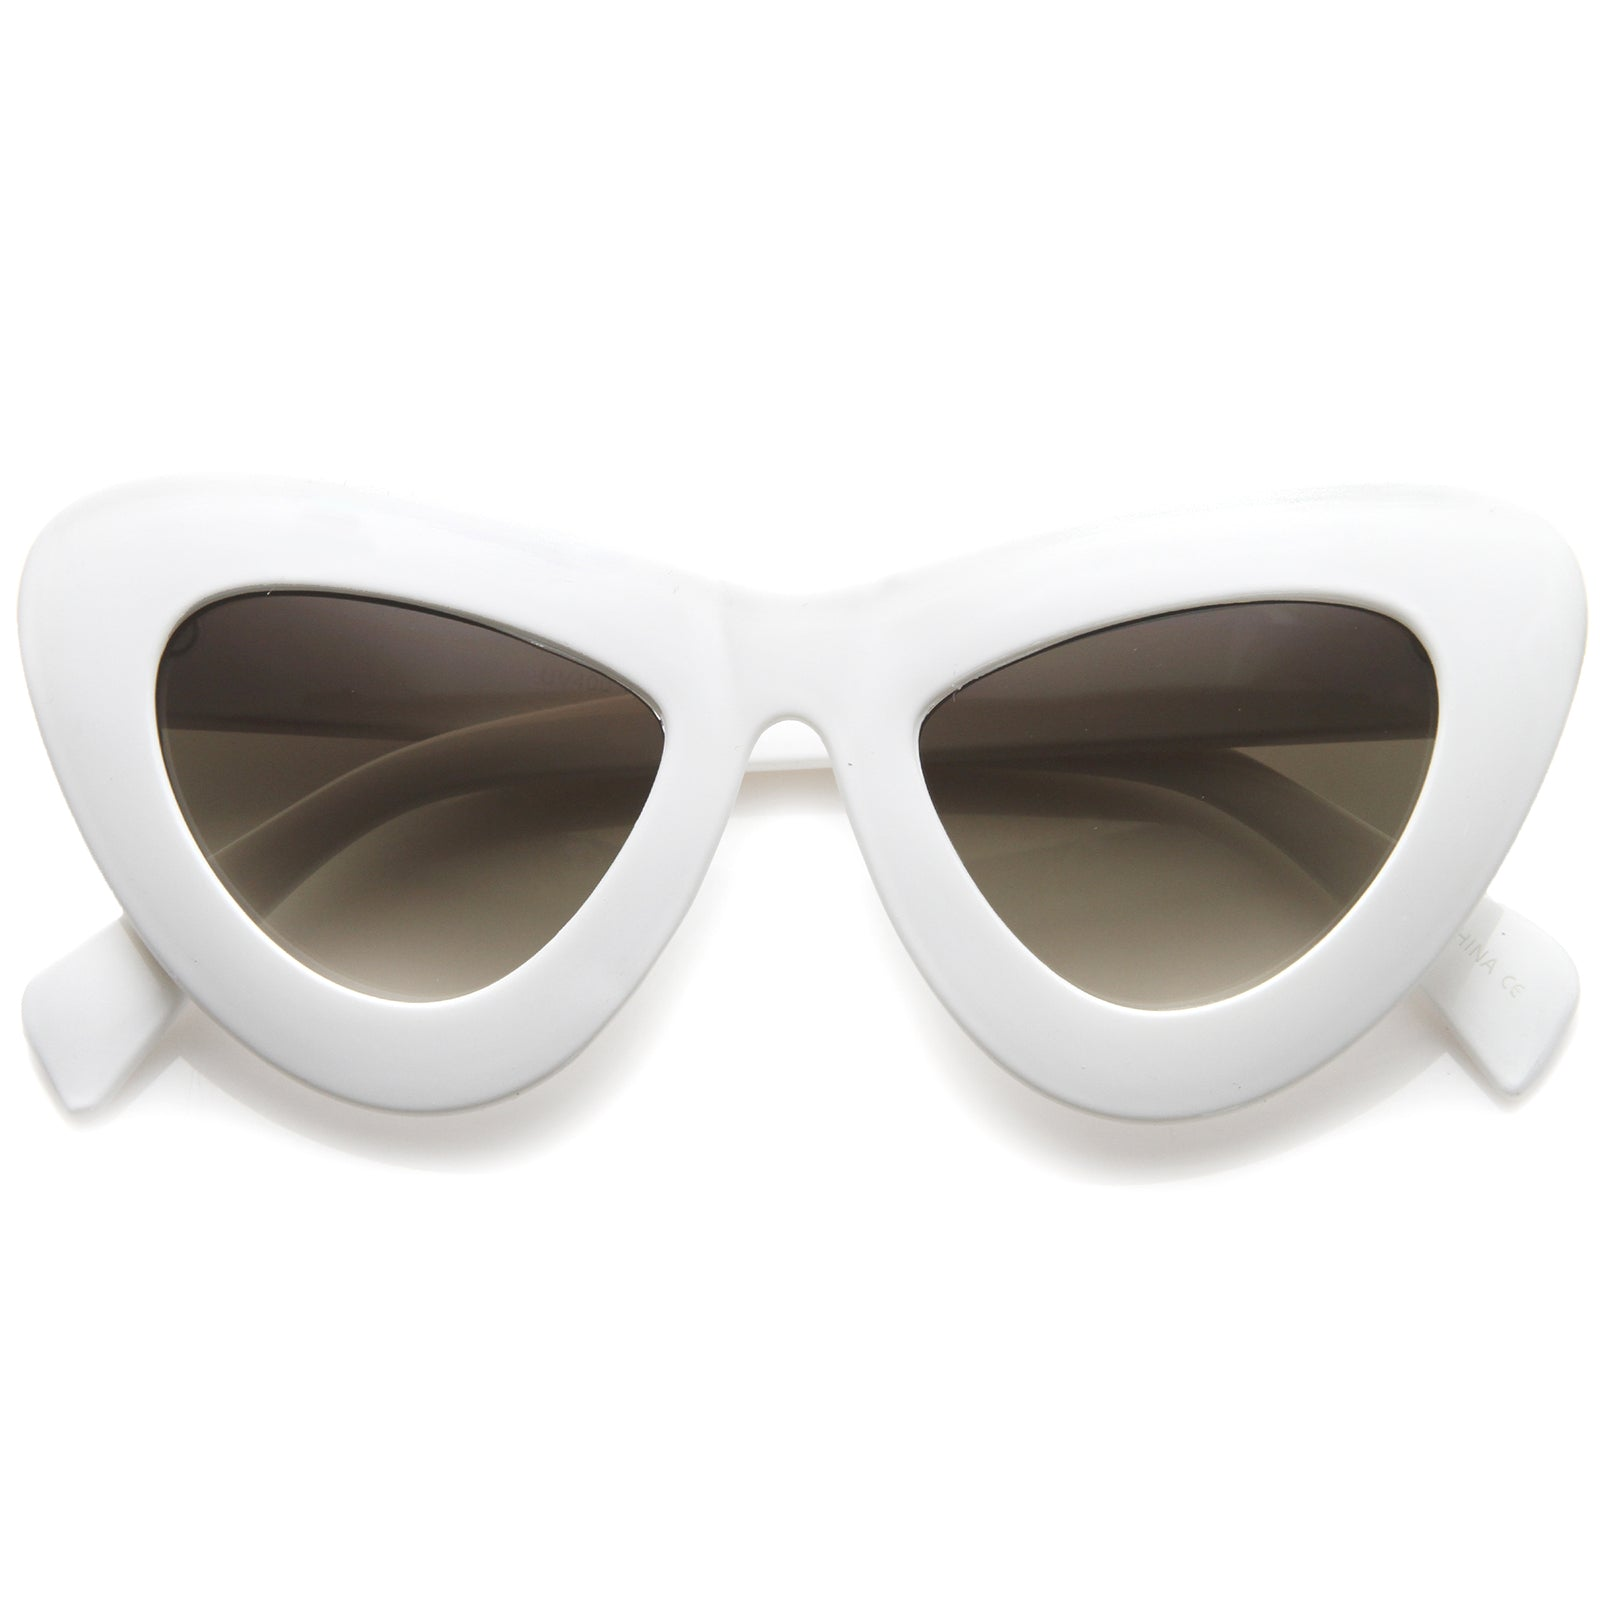 Womens Cat Eye Sunglasses With UV400 Protected Composite Lens - sunglass.la - 5